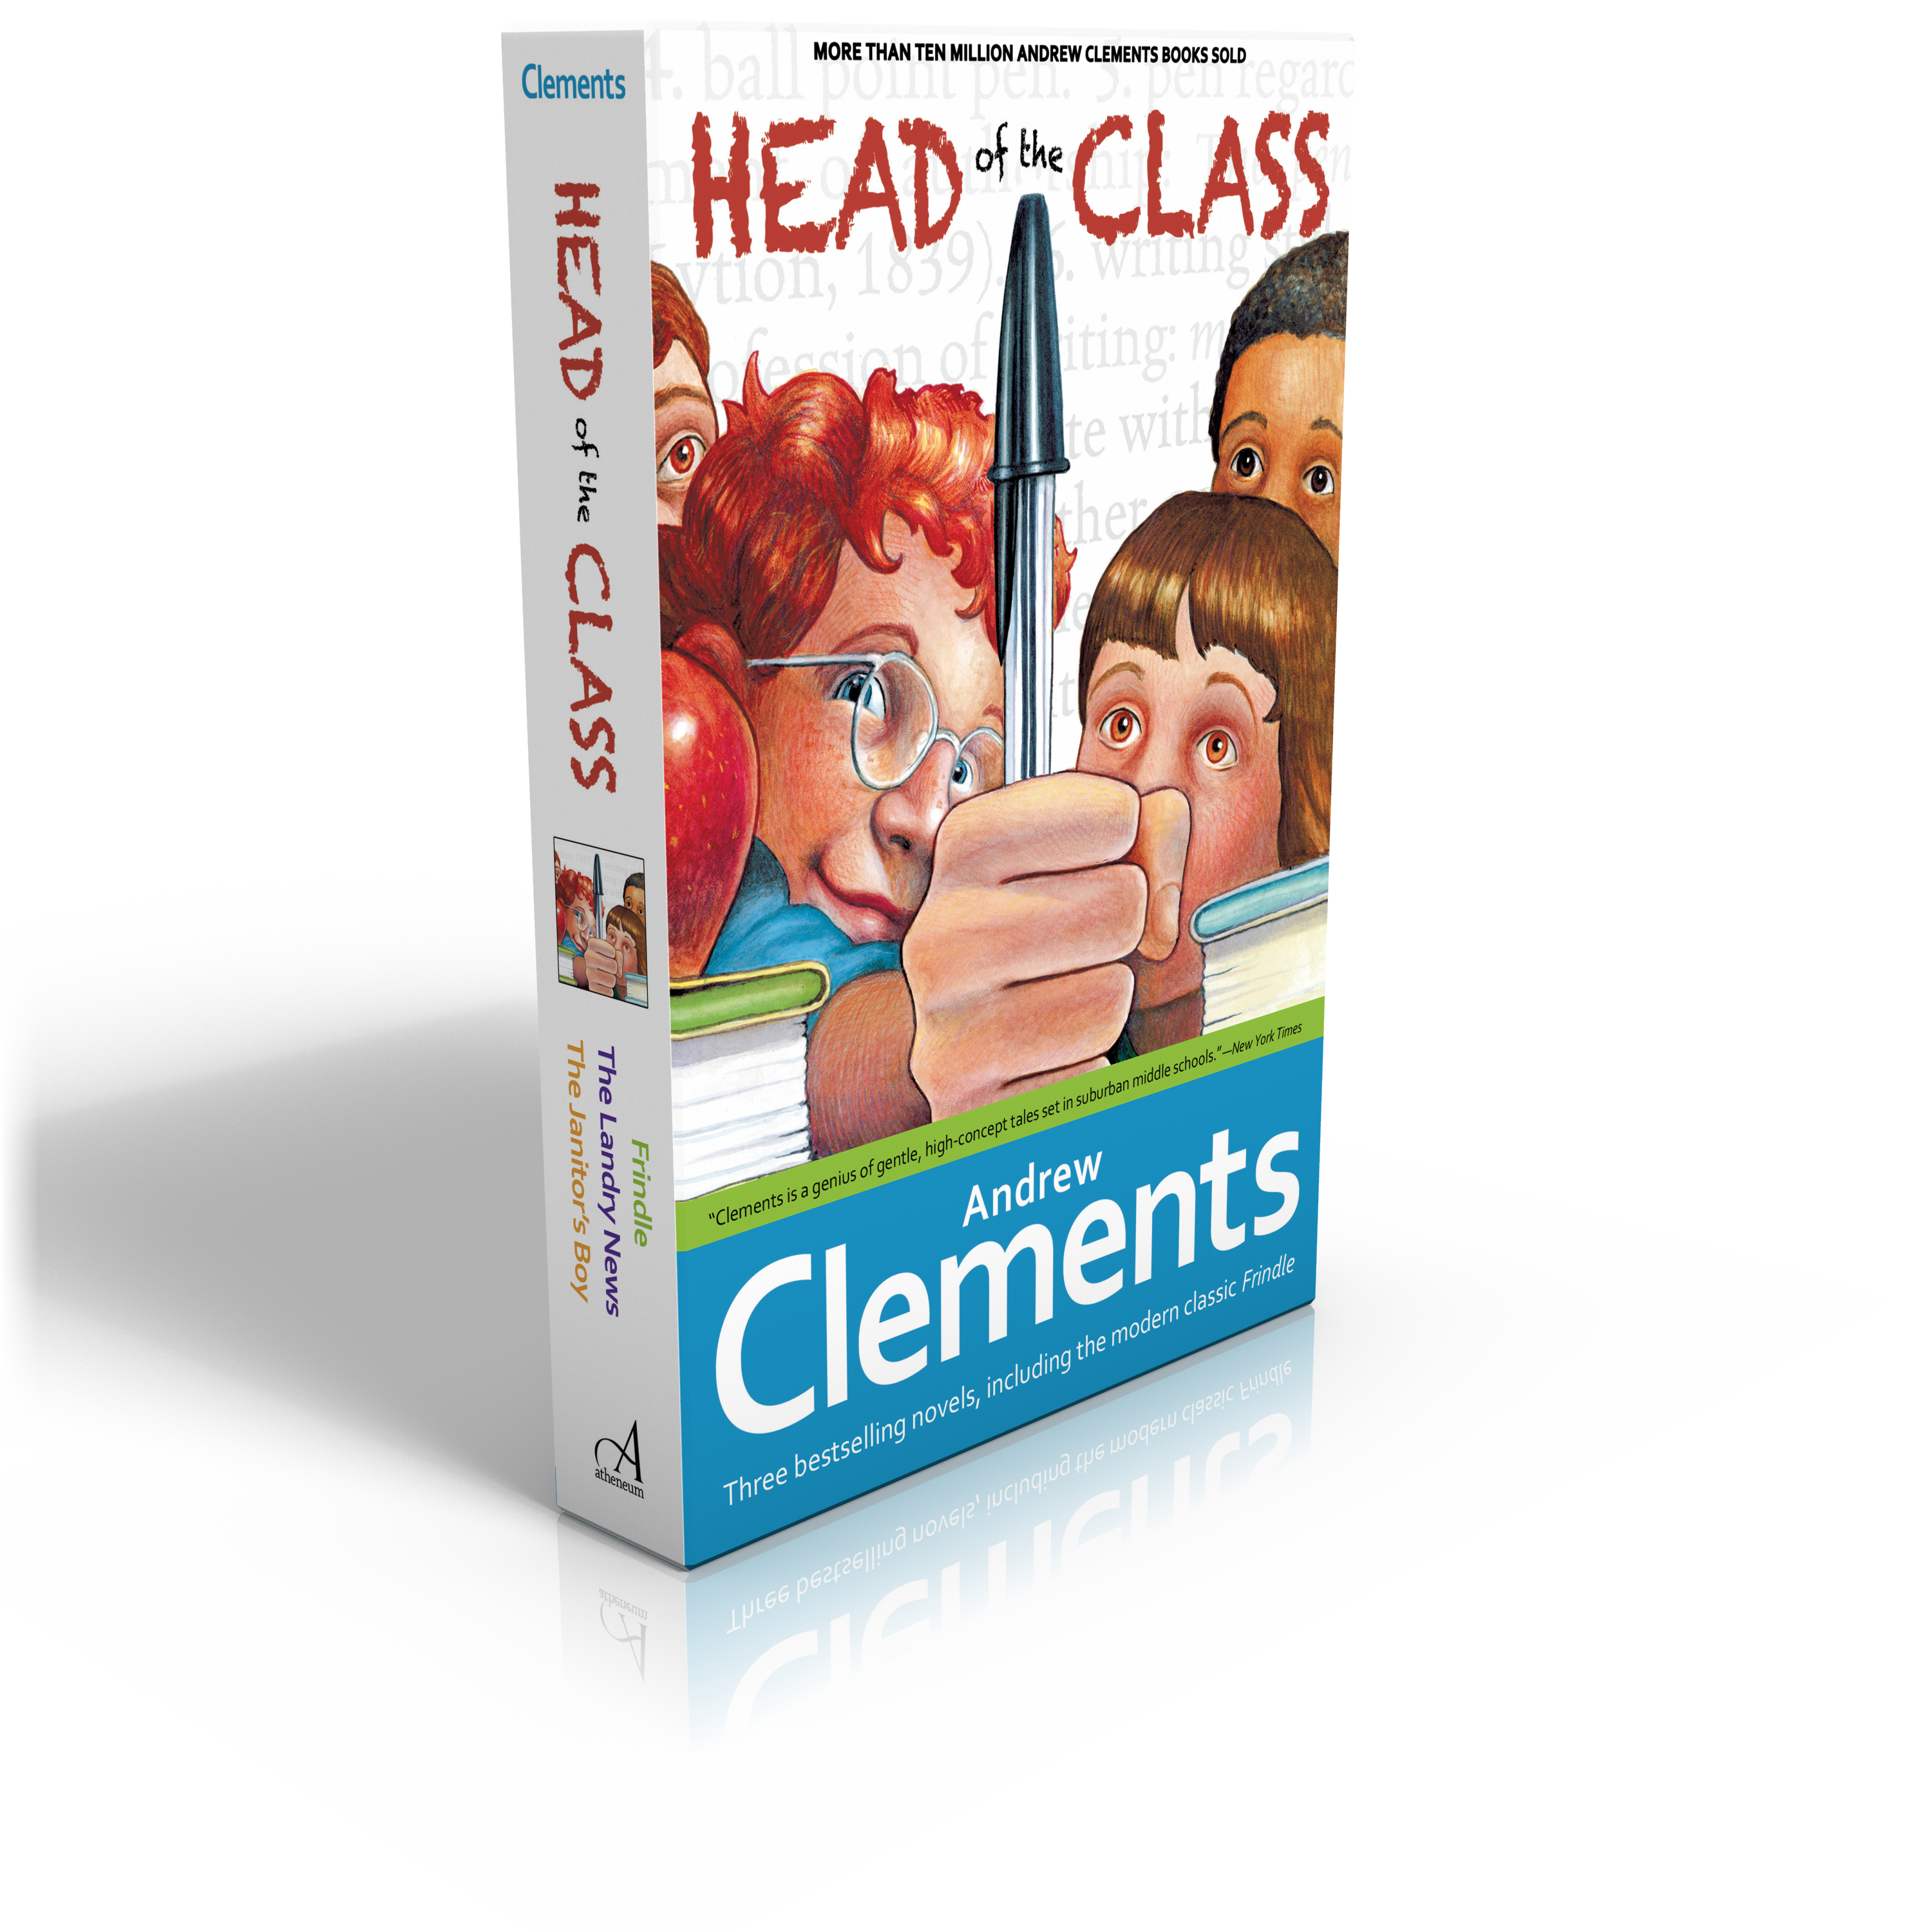 Book Cover Image (jpg): Head Of The Class